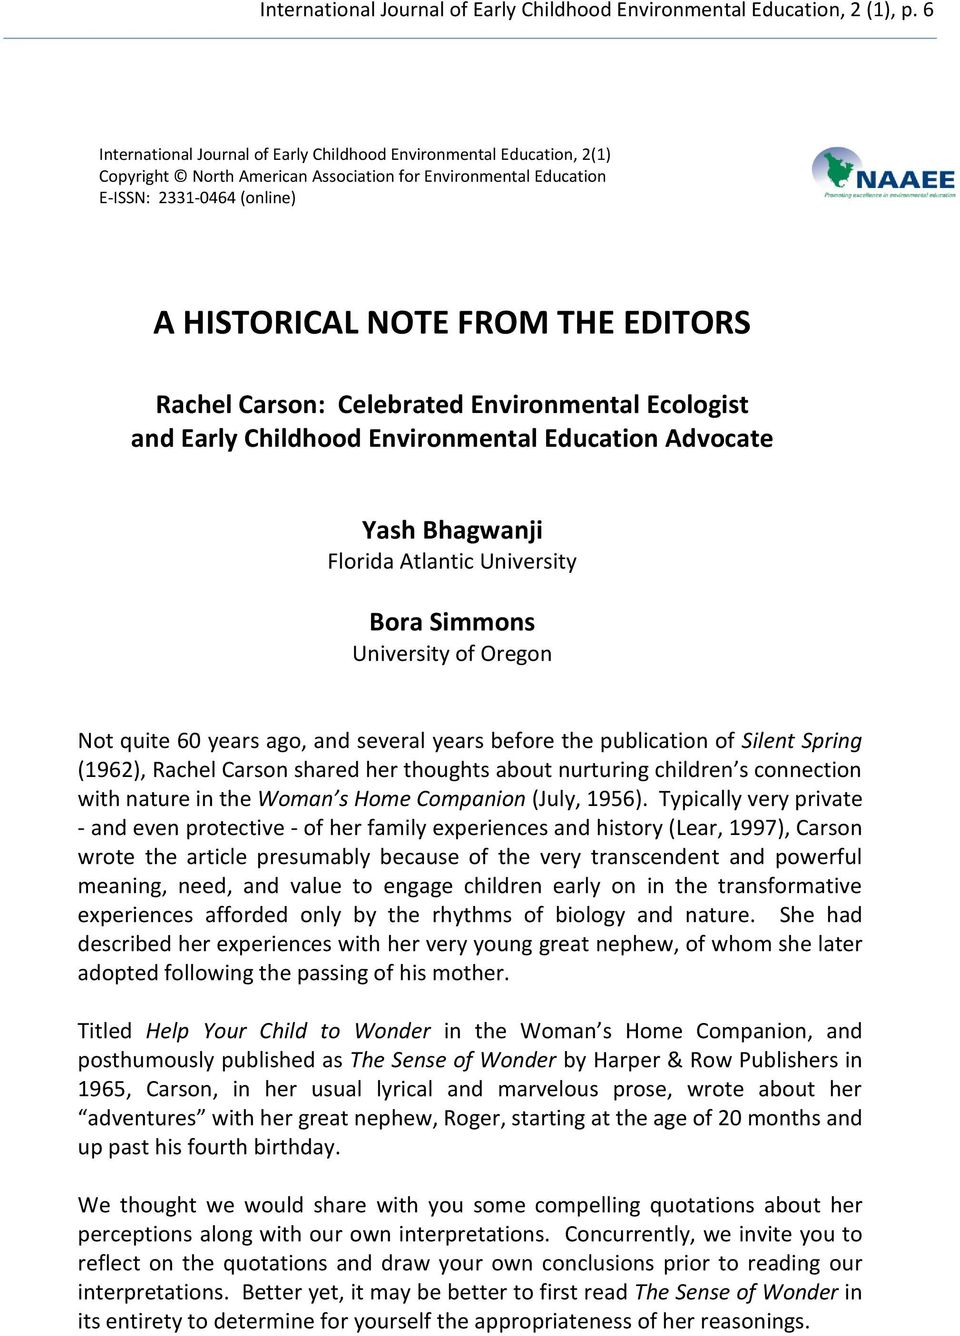 Rachel Carson: Celebrated Environmental Ecologist and Early Childhood Environmental Education Advocate Yash Bhagwanji Florida Atlantic University Bora Simmons University of Oregon Not quite 60 years